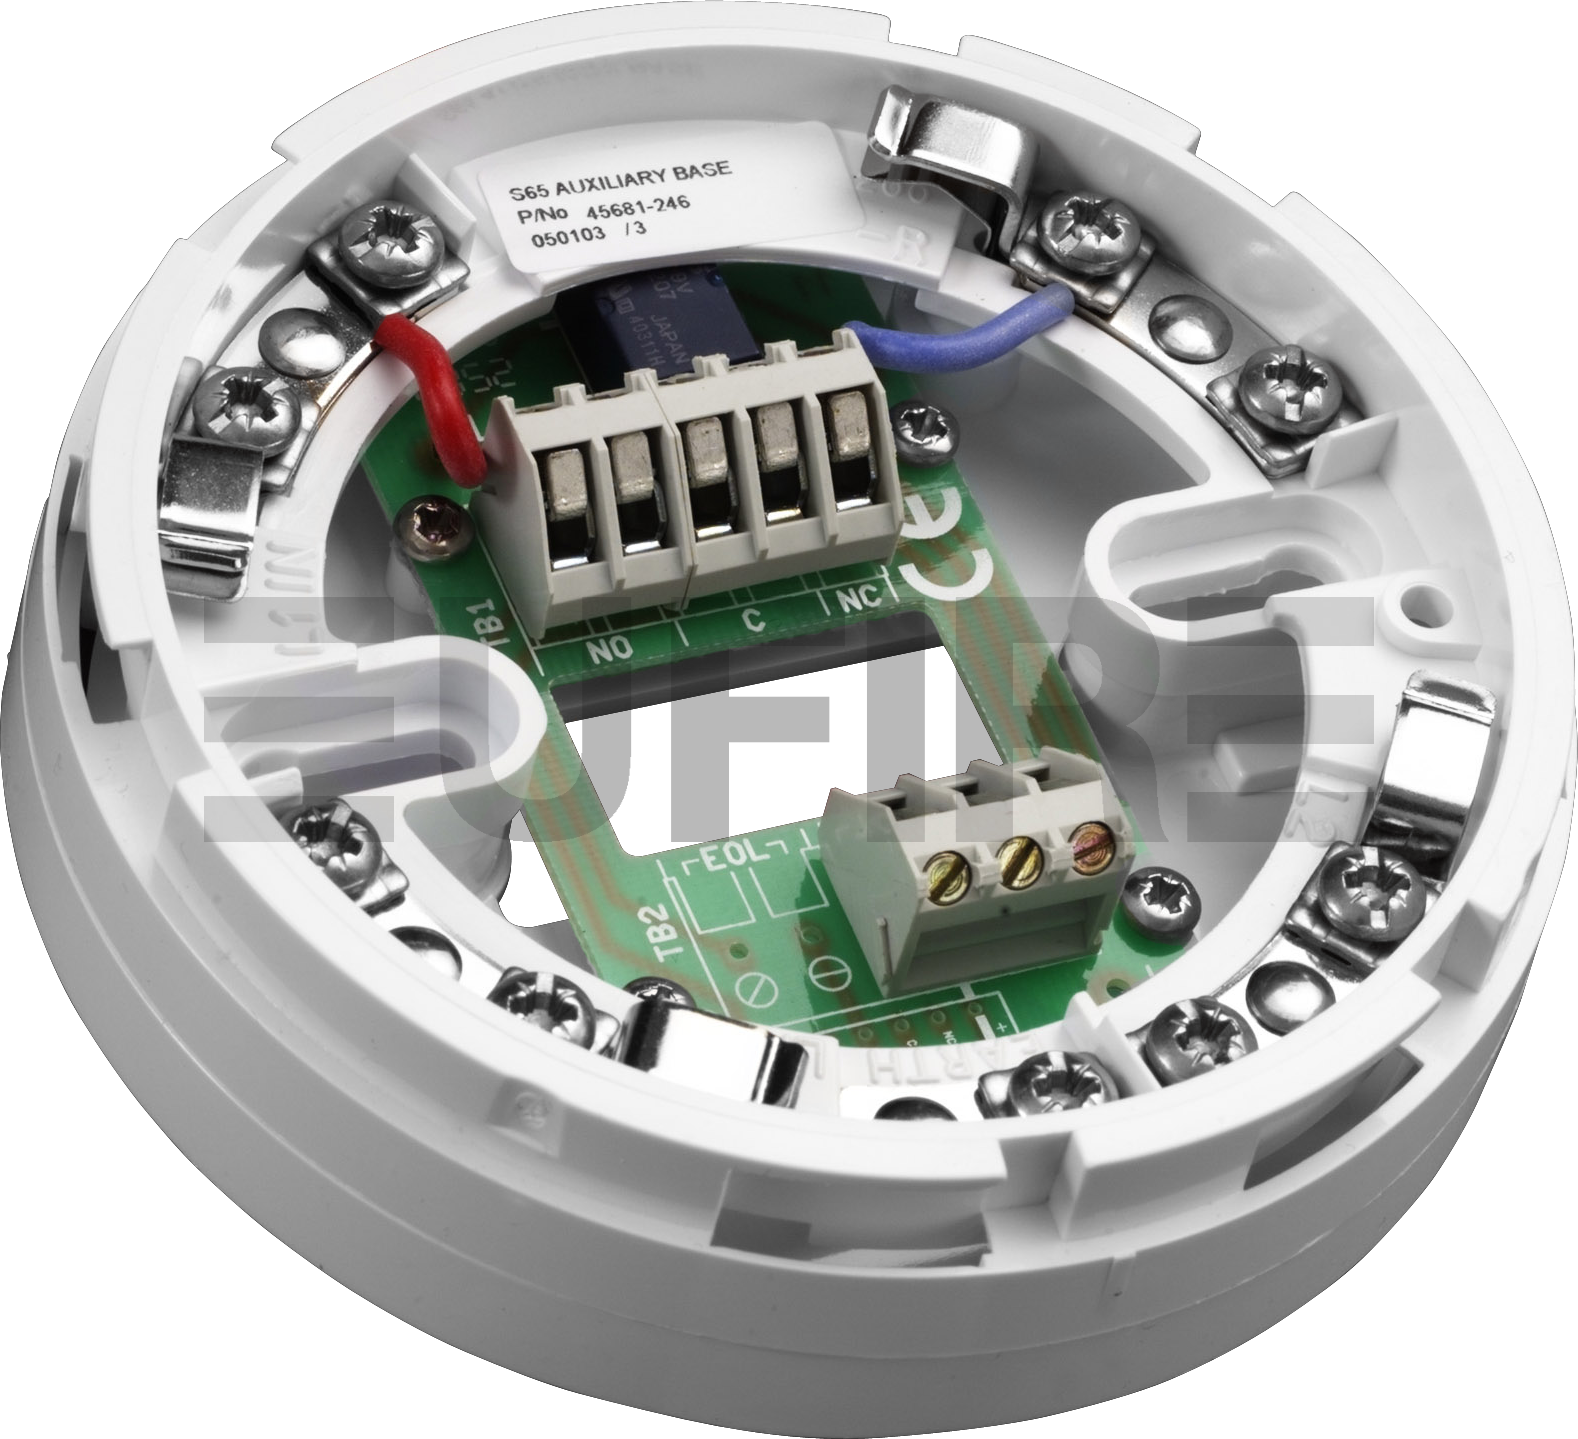 SD 1010 1?w\=1170\&h\=820\&scale\=canvas sie smoke duct detector wiring diagram manual call point wiring apollo orbis smoke detector wiring diagram at webbmarketing.co